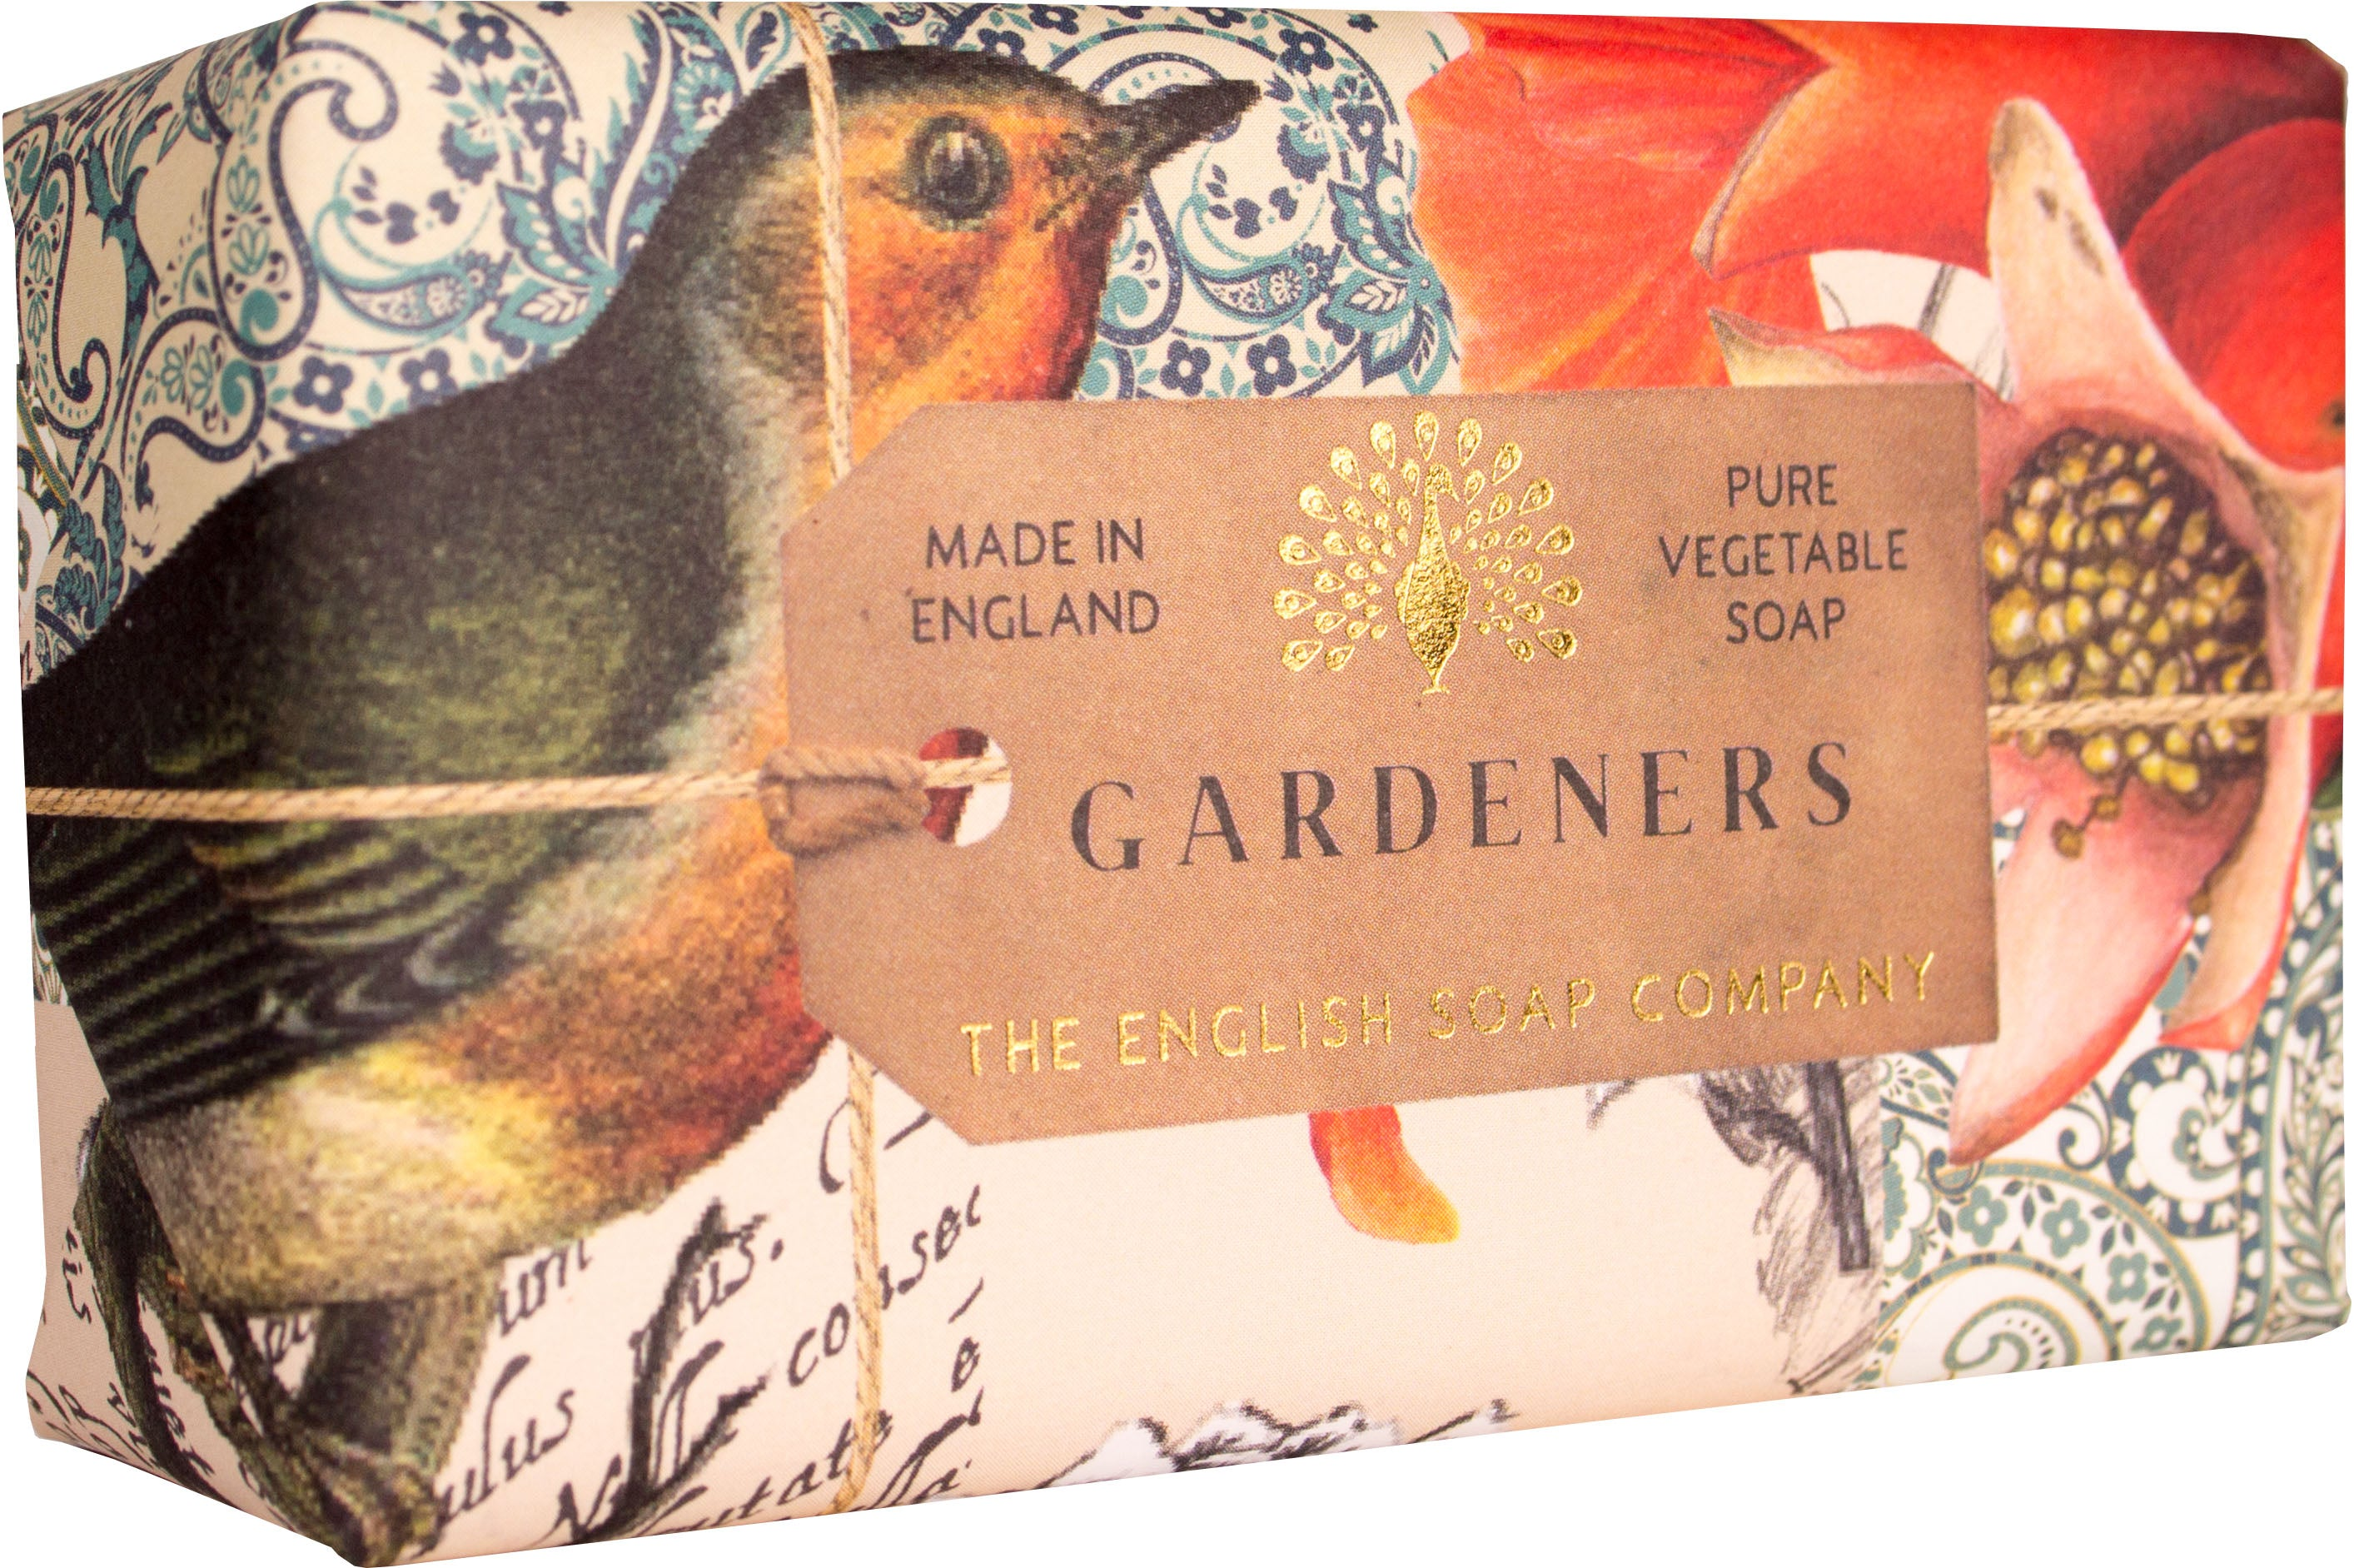 Anniversary Collection by the English Soap Company - Exfoliating Gardeners